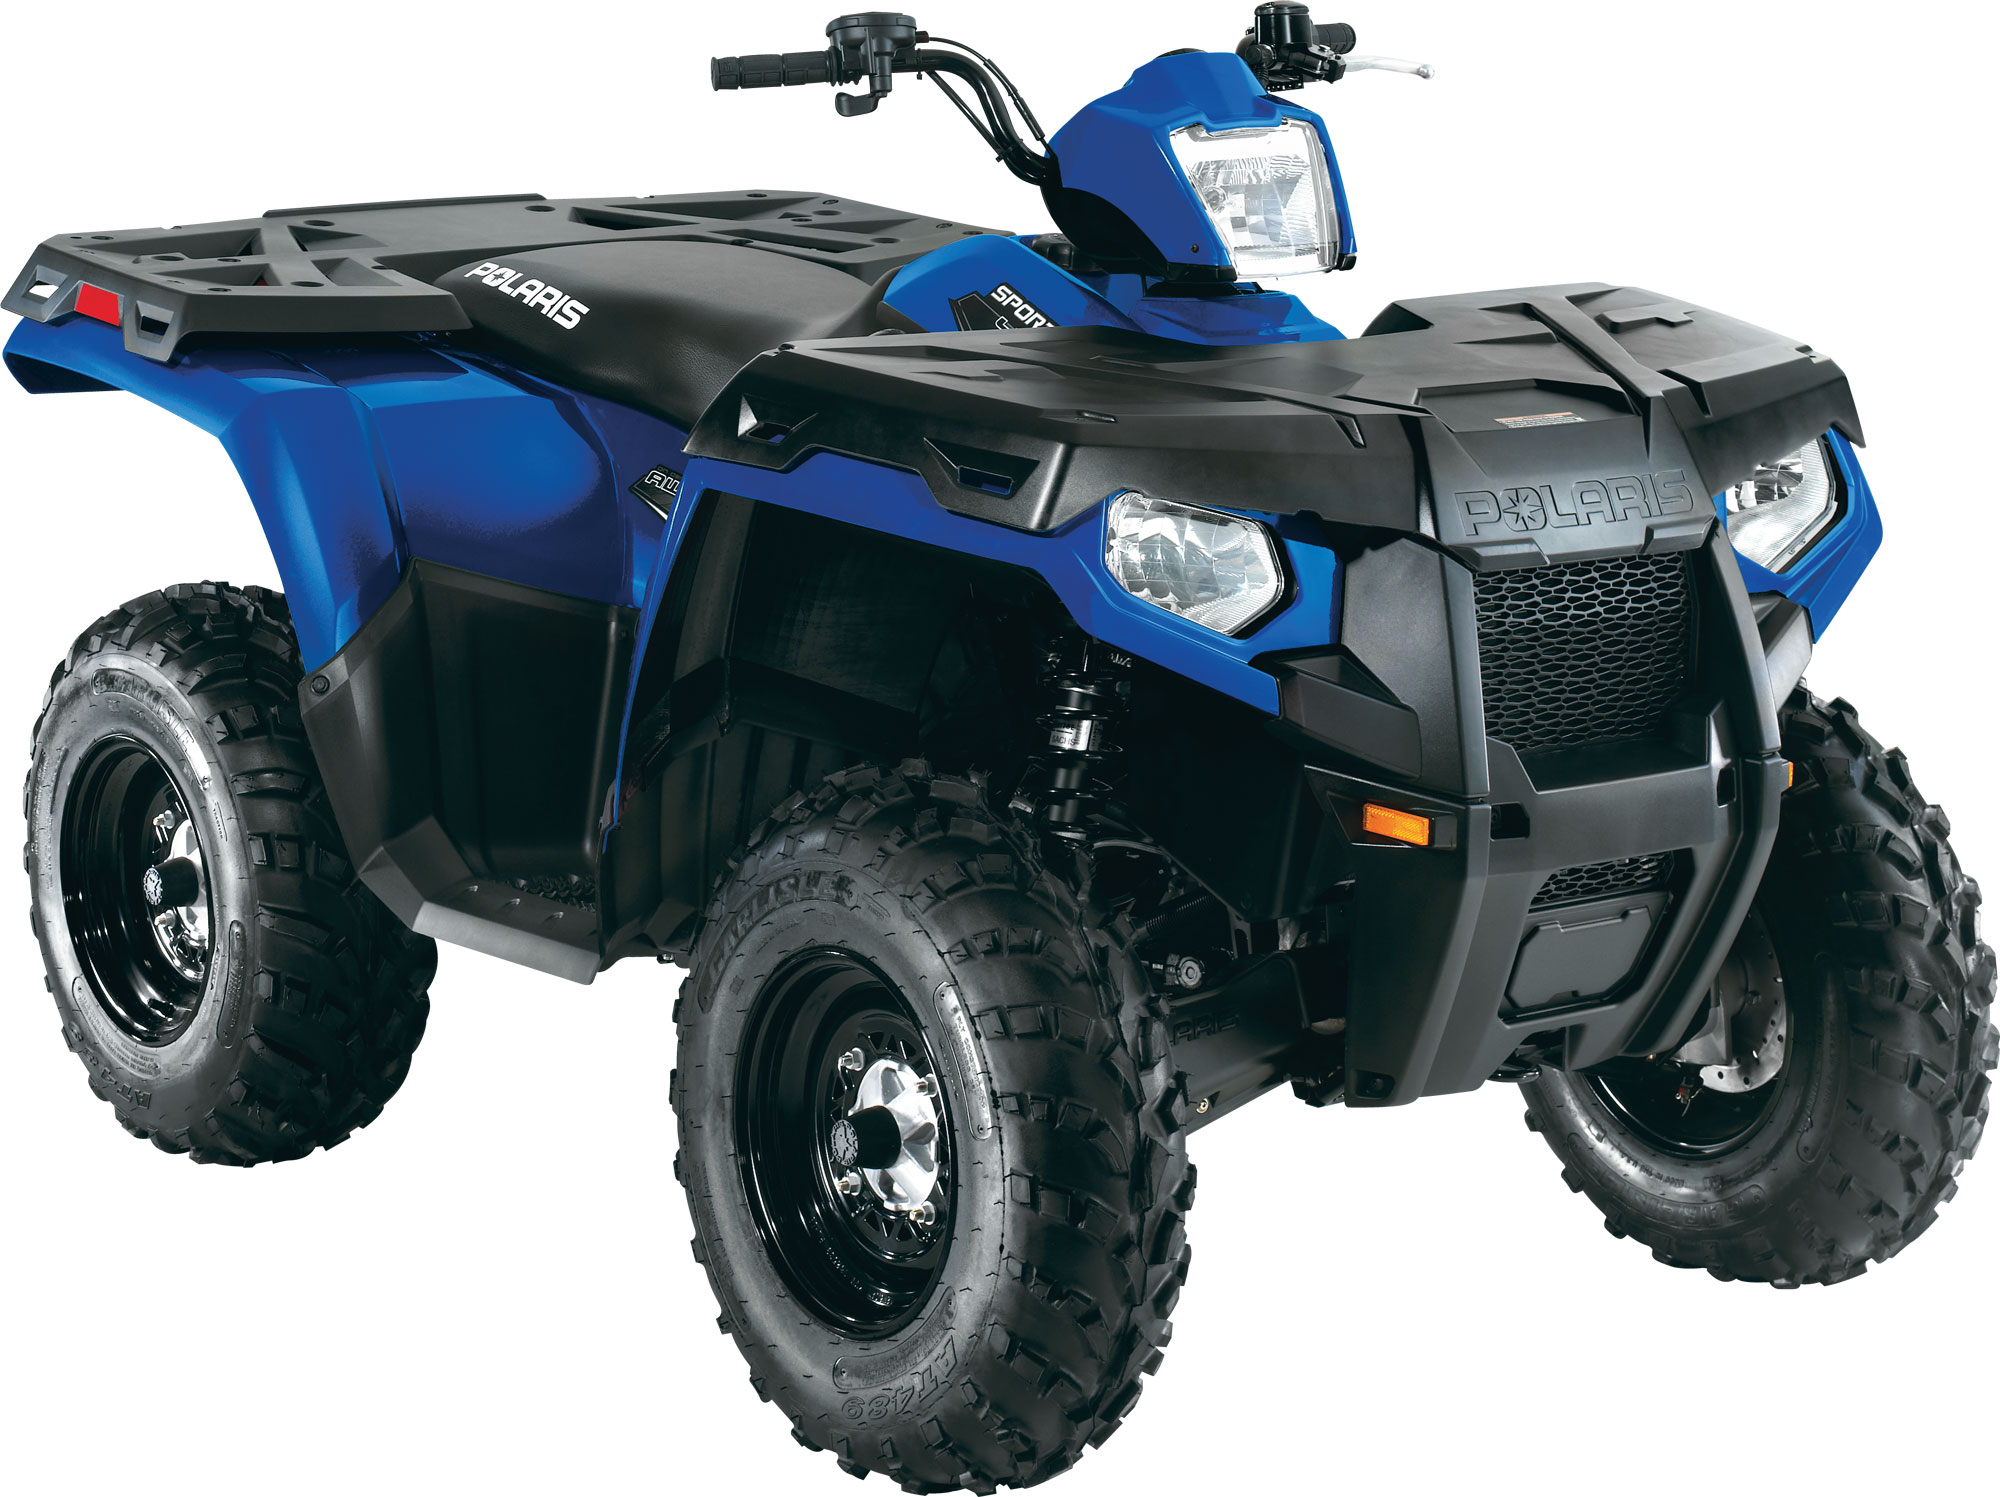 2012 polaris sportsman 400 ho review. Black Bedroom Furniture Sets. Home Design Ideas